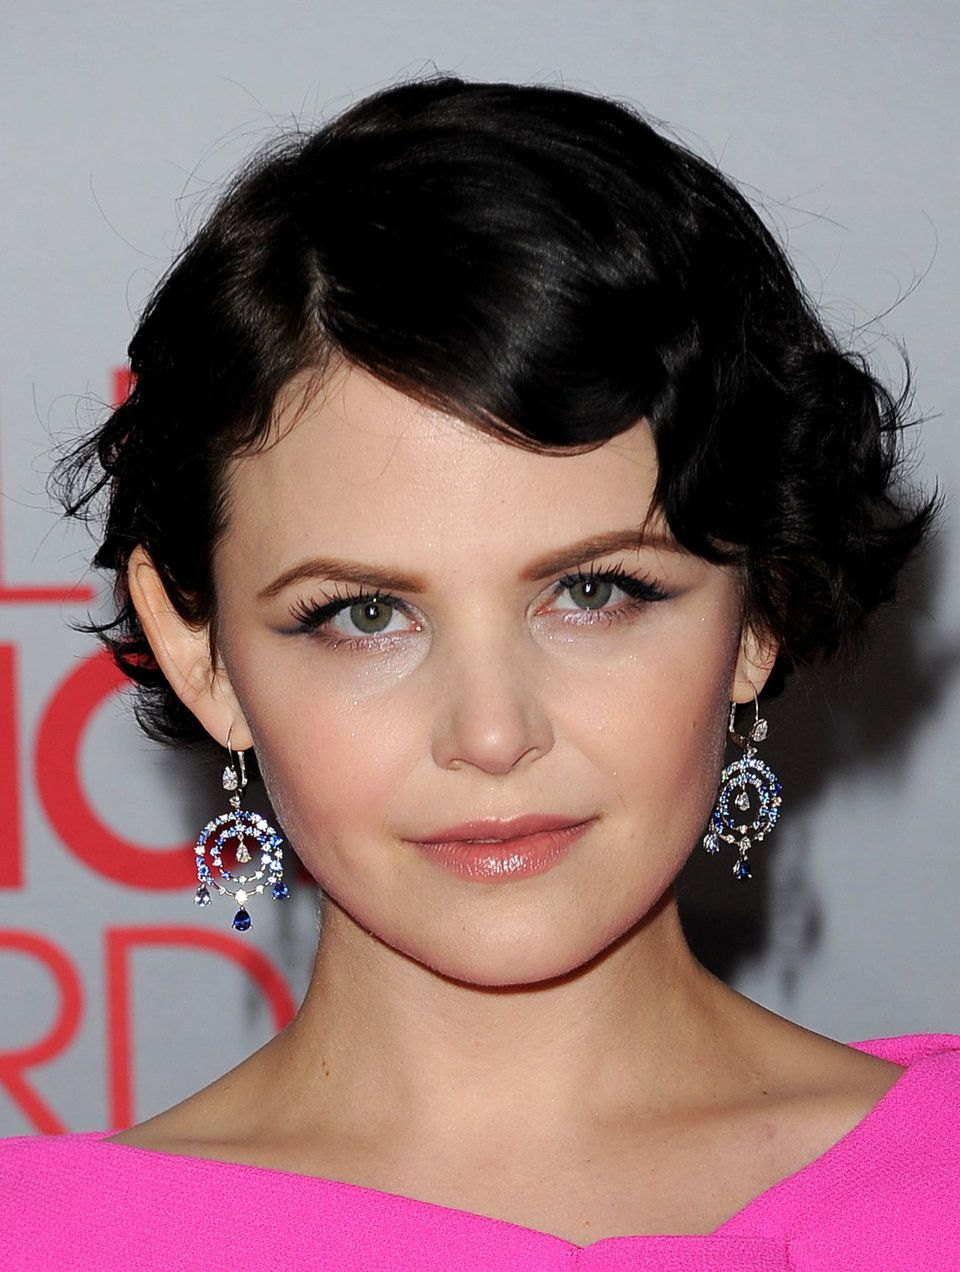 Ginnifer Goodwin S Hair Story The Long Short Of It Huffpost Life With Images Short Hair Styles For Round Faces Wavy Bob Hairstyles Short Hair Styles